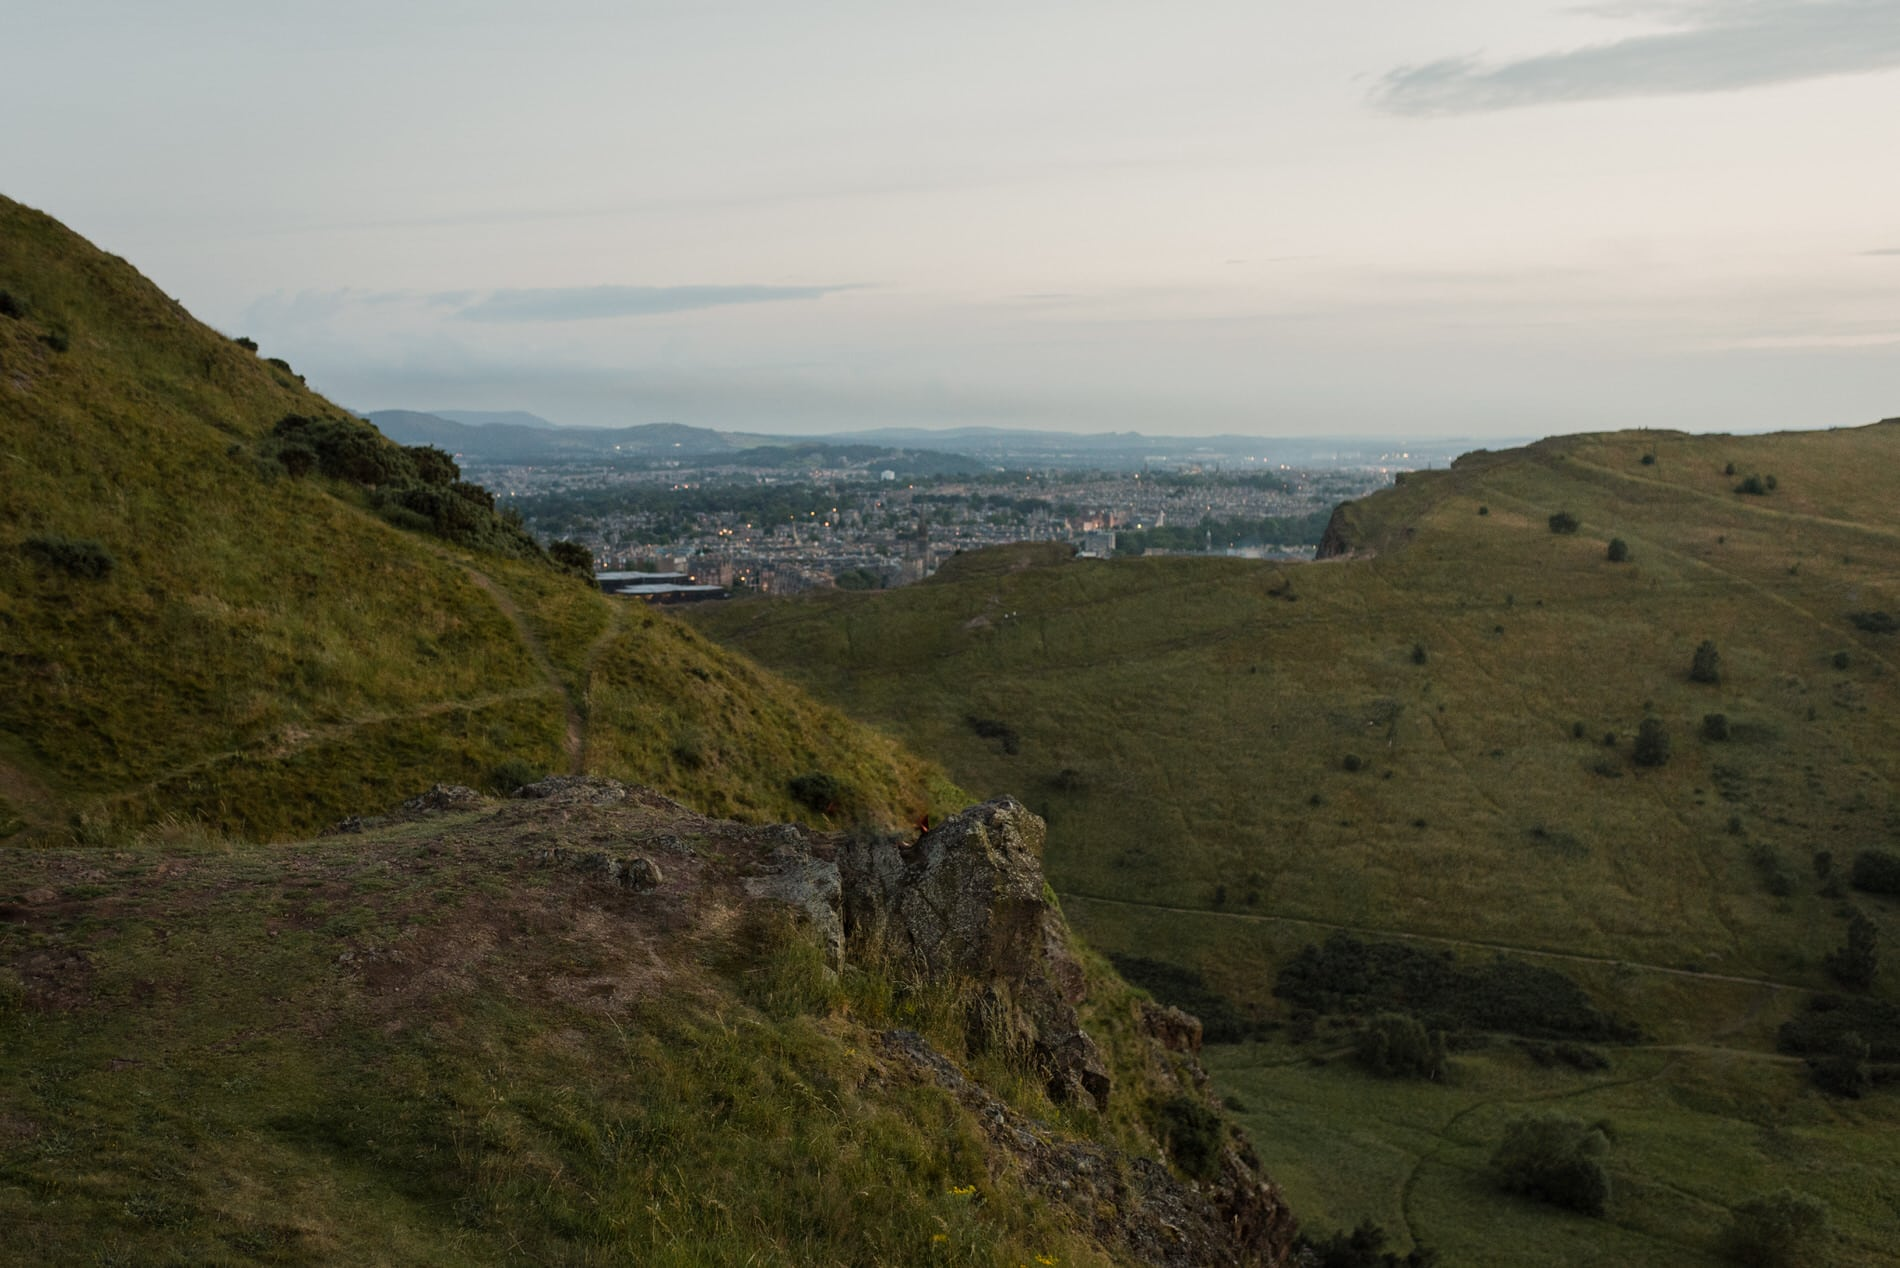 view at Arthurs seat in holyrood park edinburgh